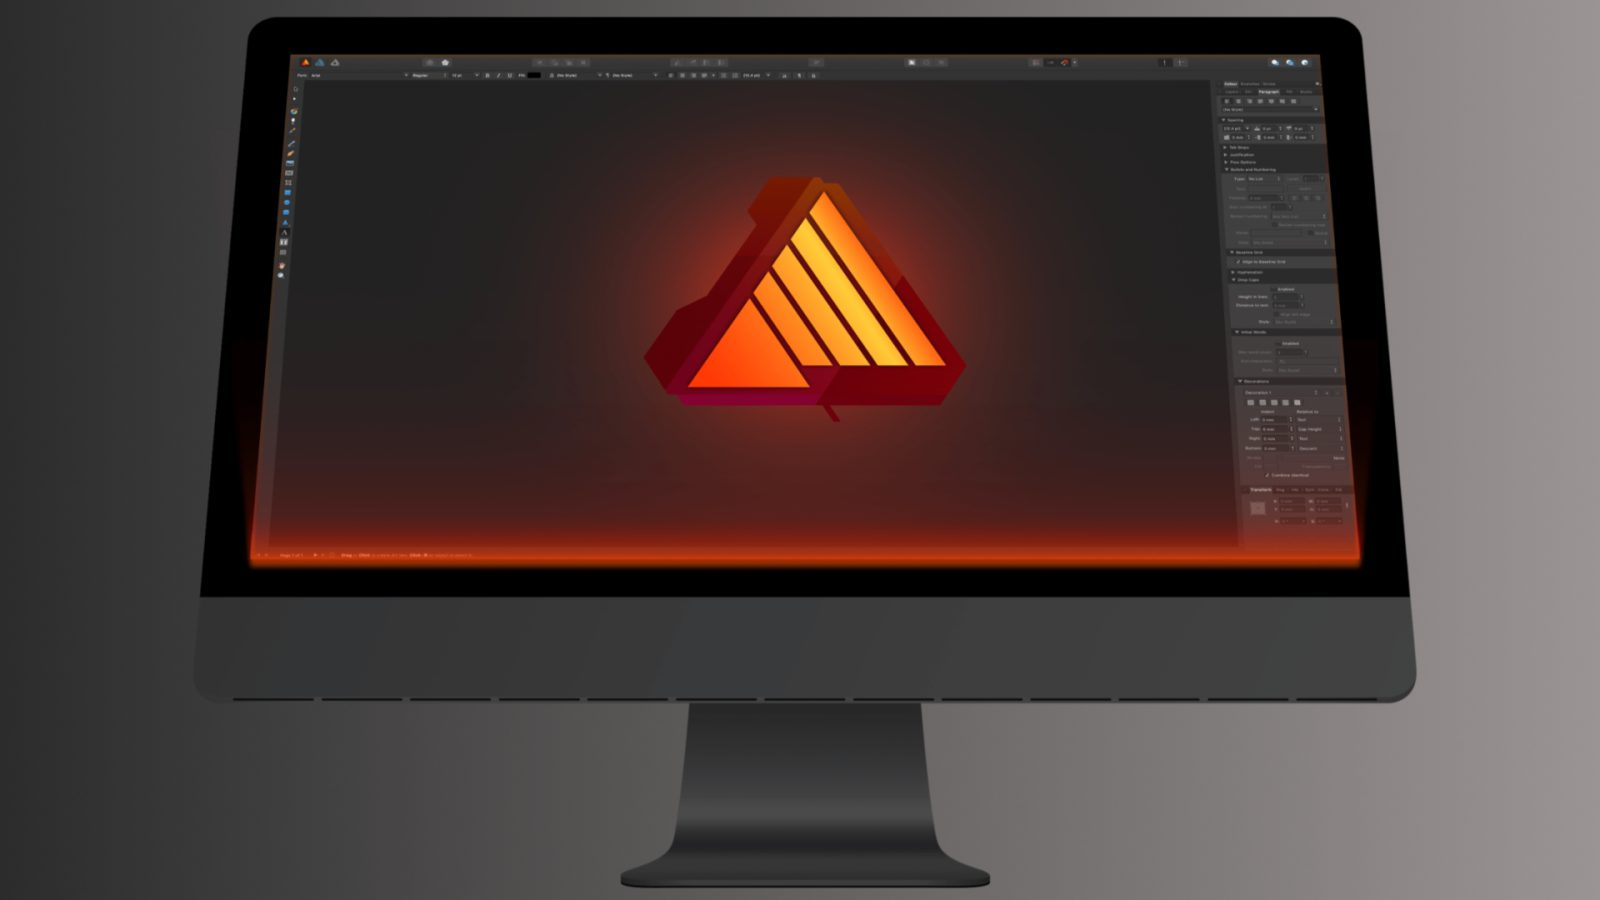 Affinity Publisher was launched end of August